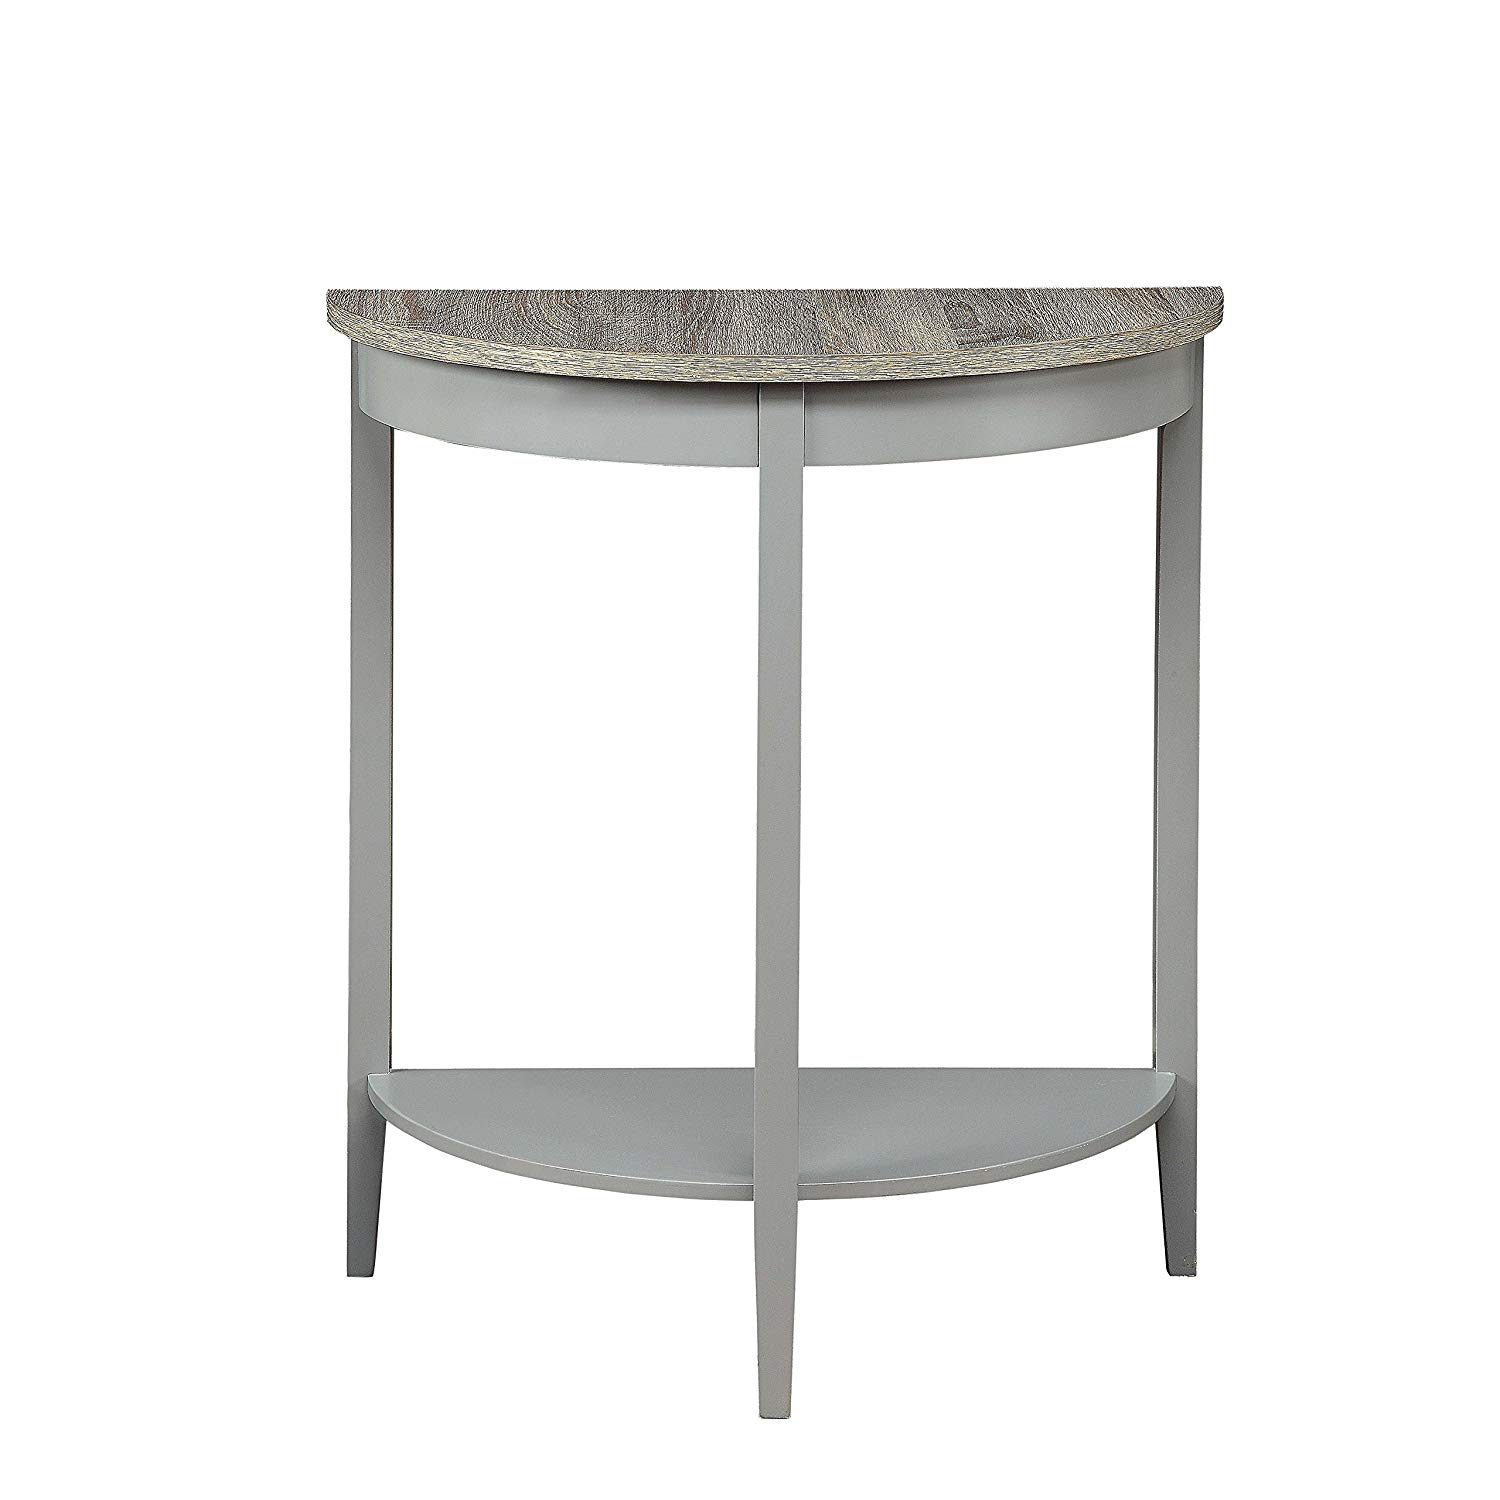 acme joey grey oak half moon console table small accent style top marble sofa mahogany hall wood painted svitlife kitchen dining plexiglass furniture tables white bedside lockers